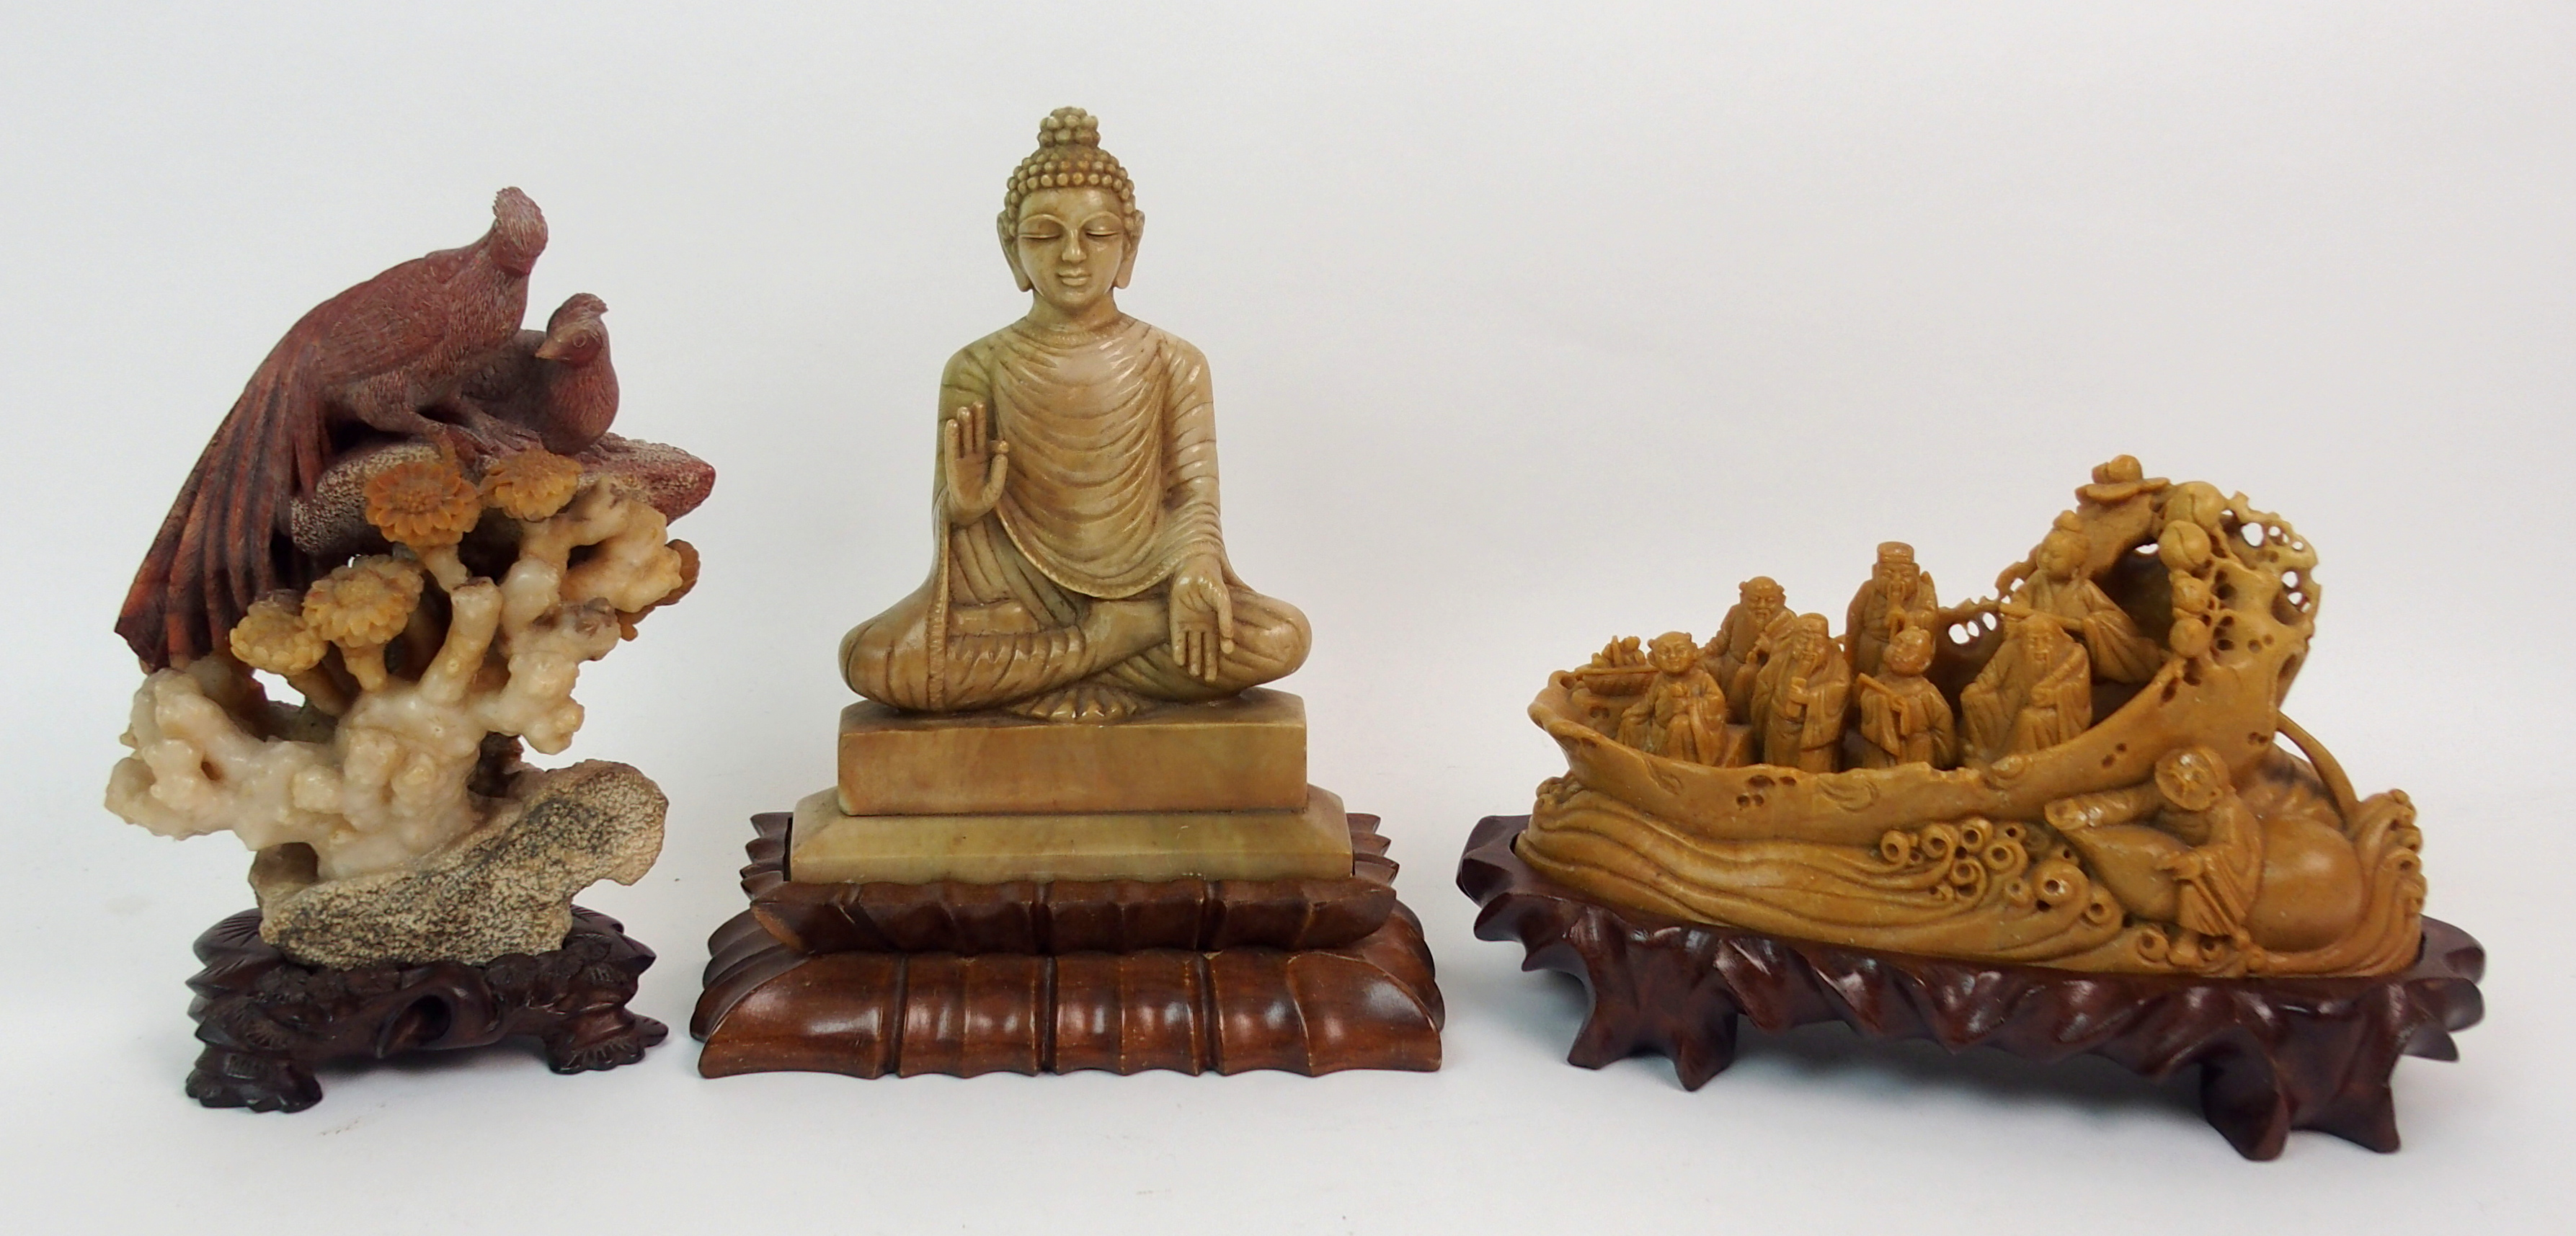 Lot 59 - A CHINESE SOAPSTONE CARVING OF BUDDHA 17.5cm high, wood stand, peacock and hen on rockwork, 17cm